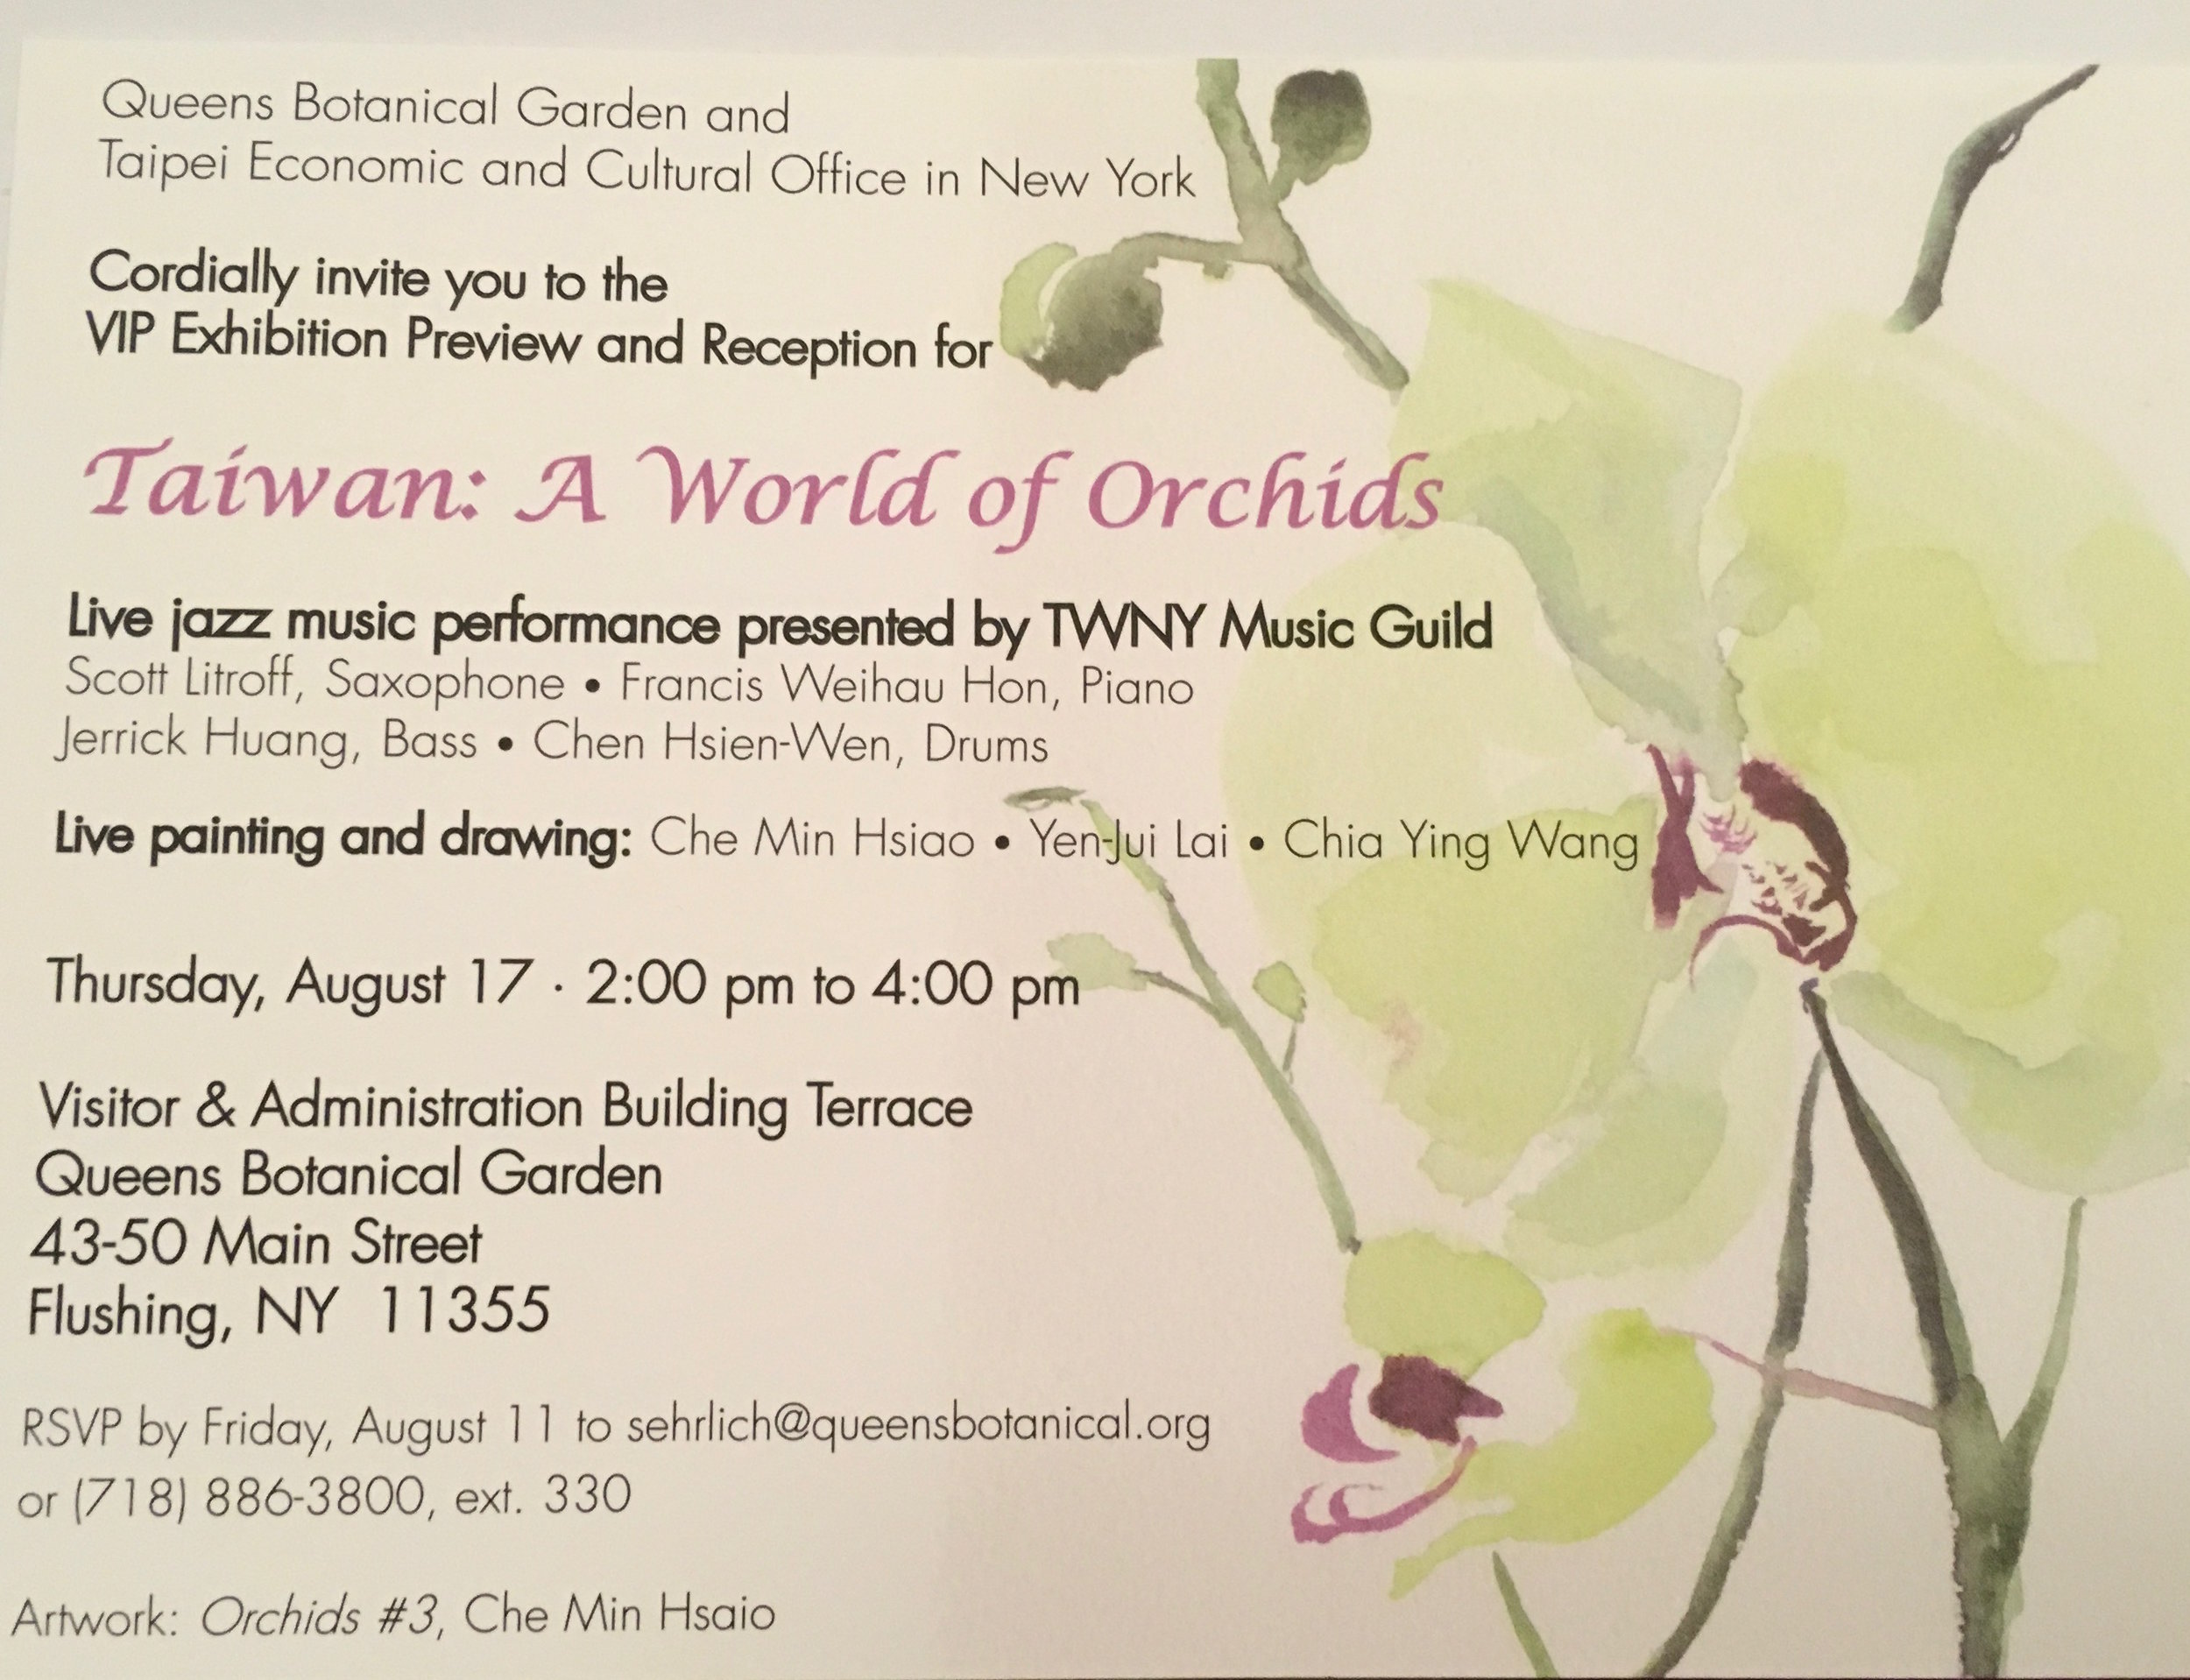 Taiwan orchids opening reception invitation cropped.jpeg